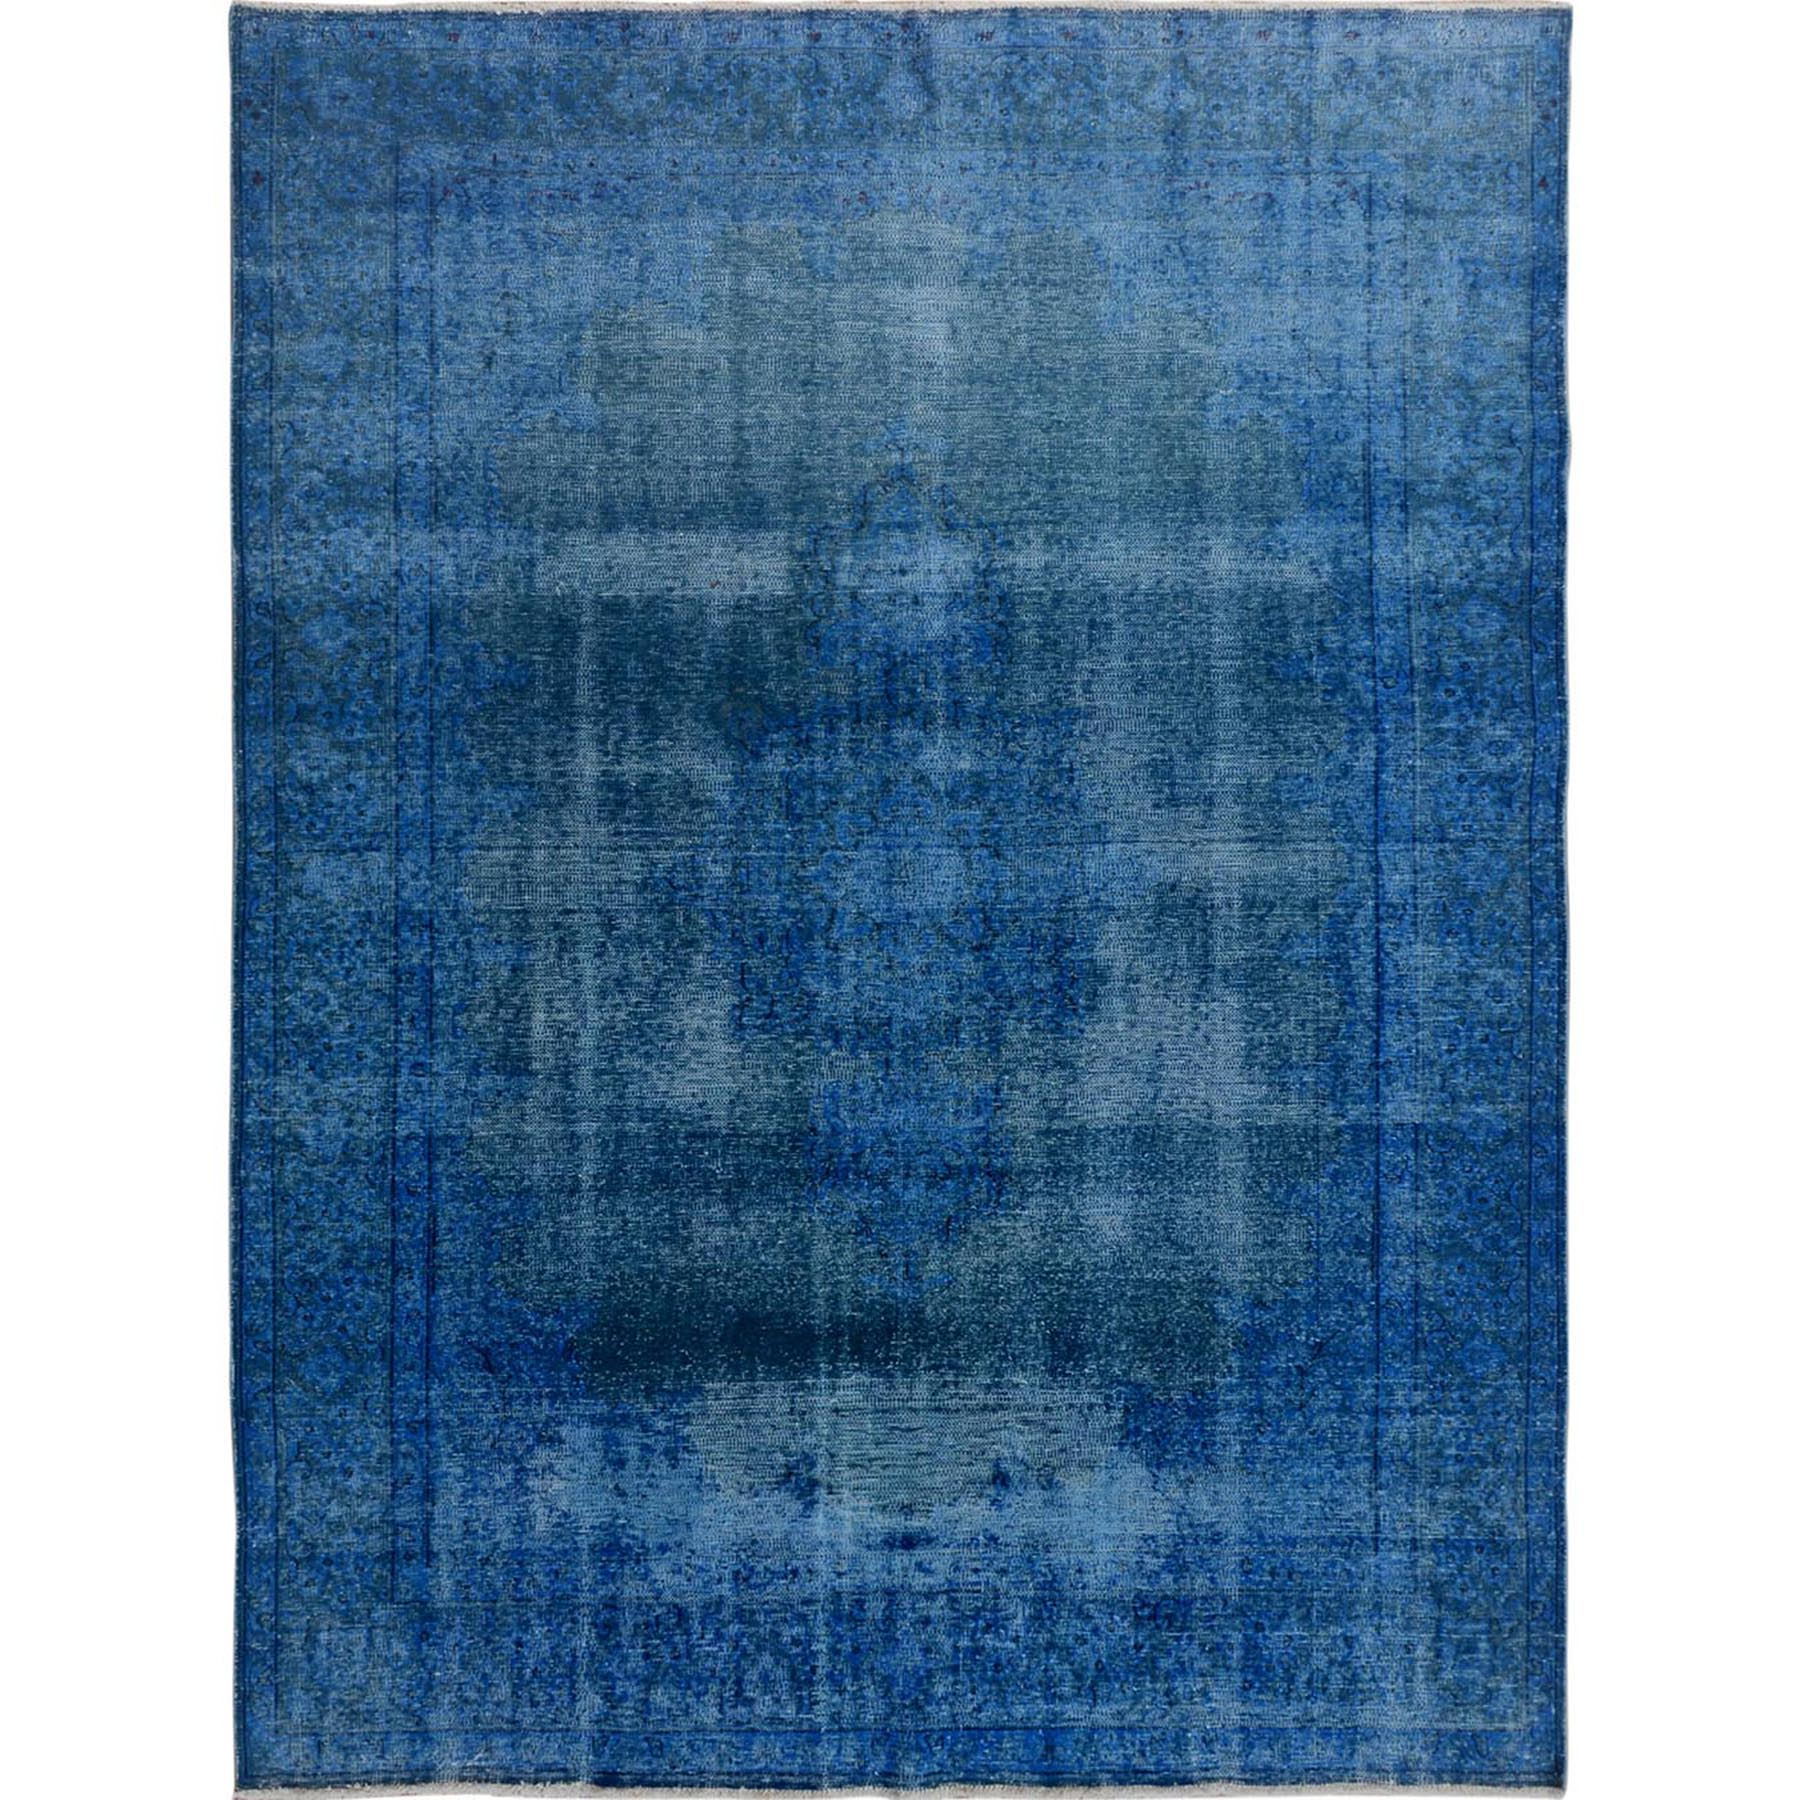 "7'x9'3"" Blue Overdyed Clean Worn Down Vintage Persian Kerman Pure Wool Hand Woven Oriental Rug"